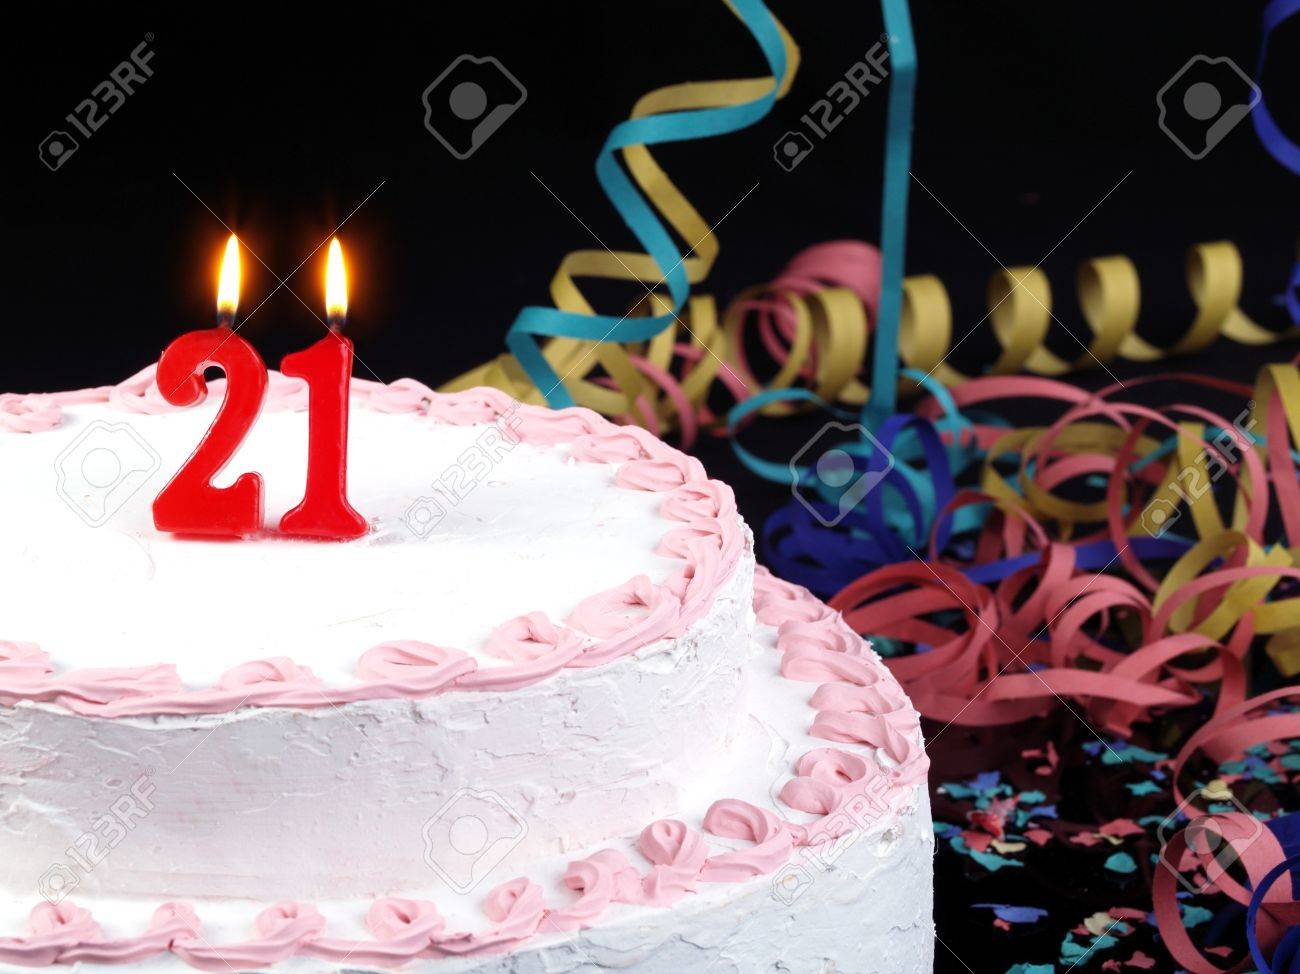 Birthday Cake With Red Candles Showing No 21 Stock Photo